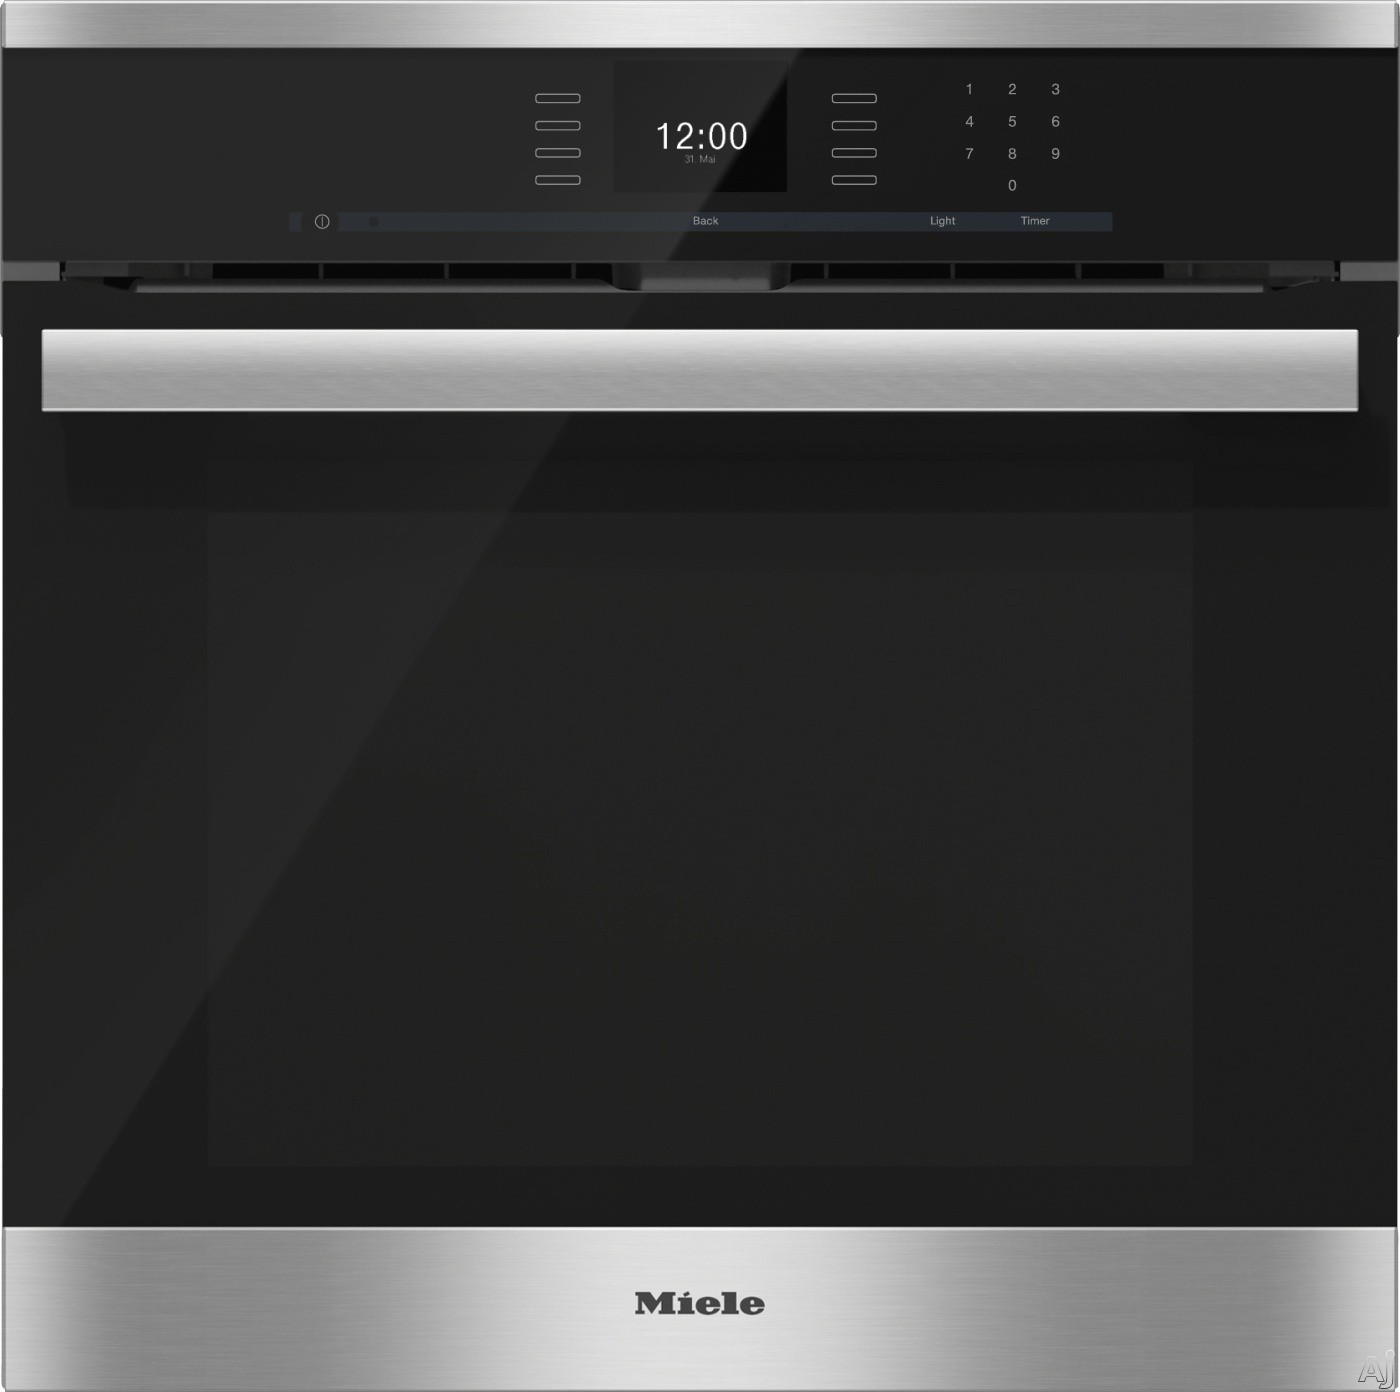 Masterchef Kitchen Appliances Miele H6660bpx 24 Single Electric Wall Oven With Convection